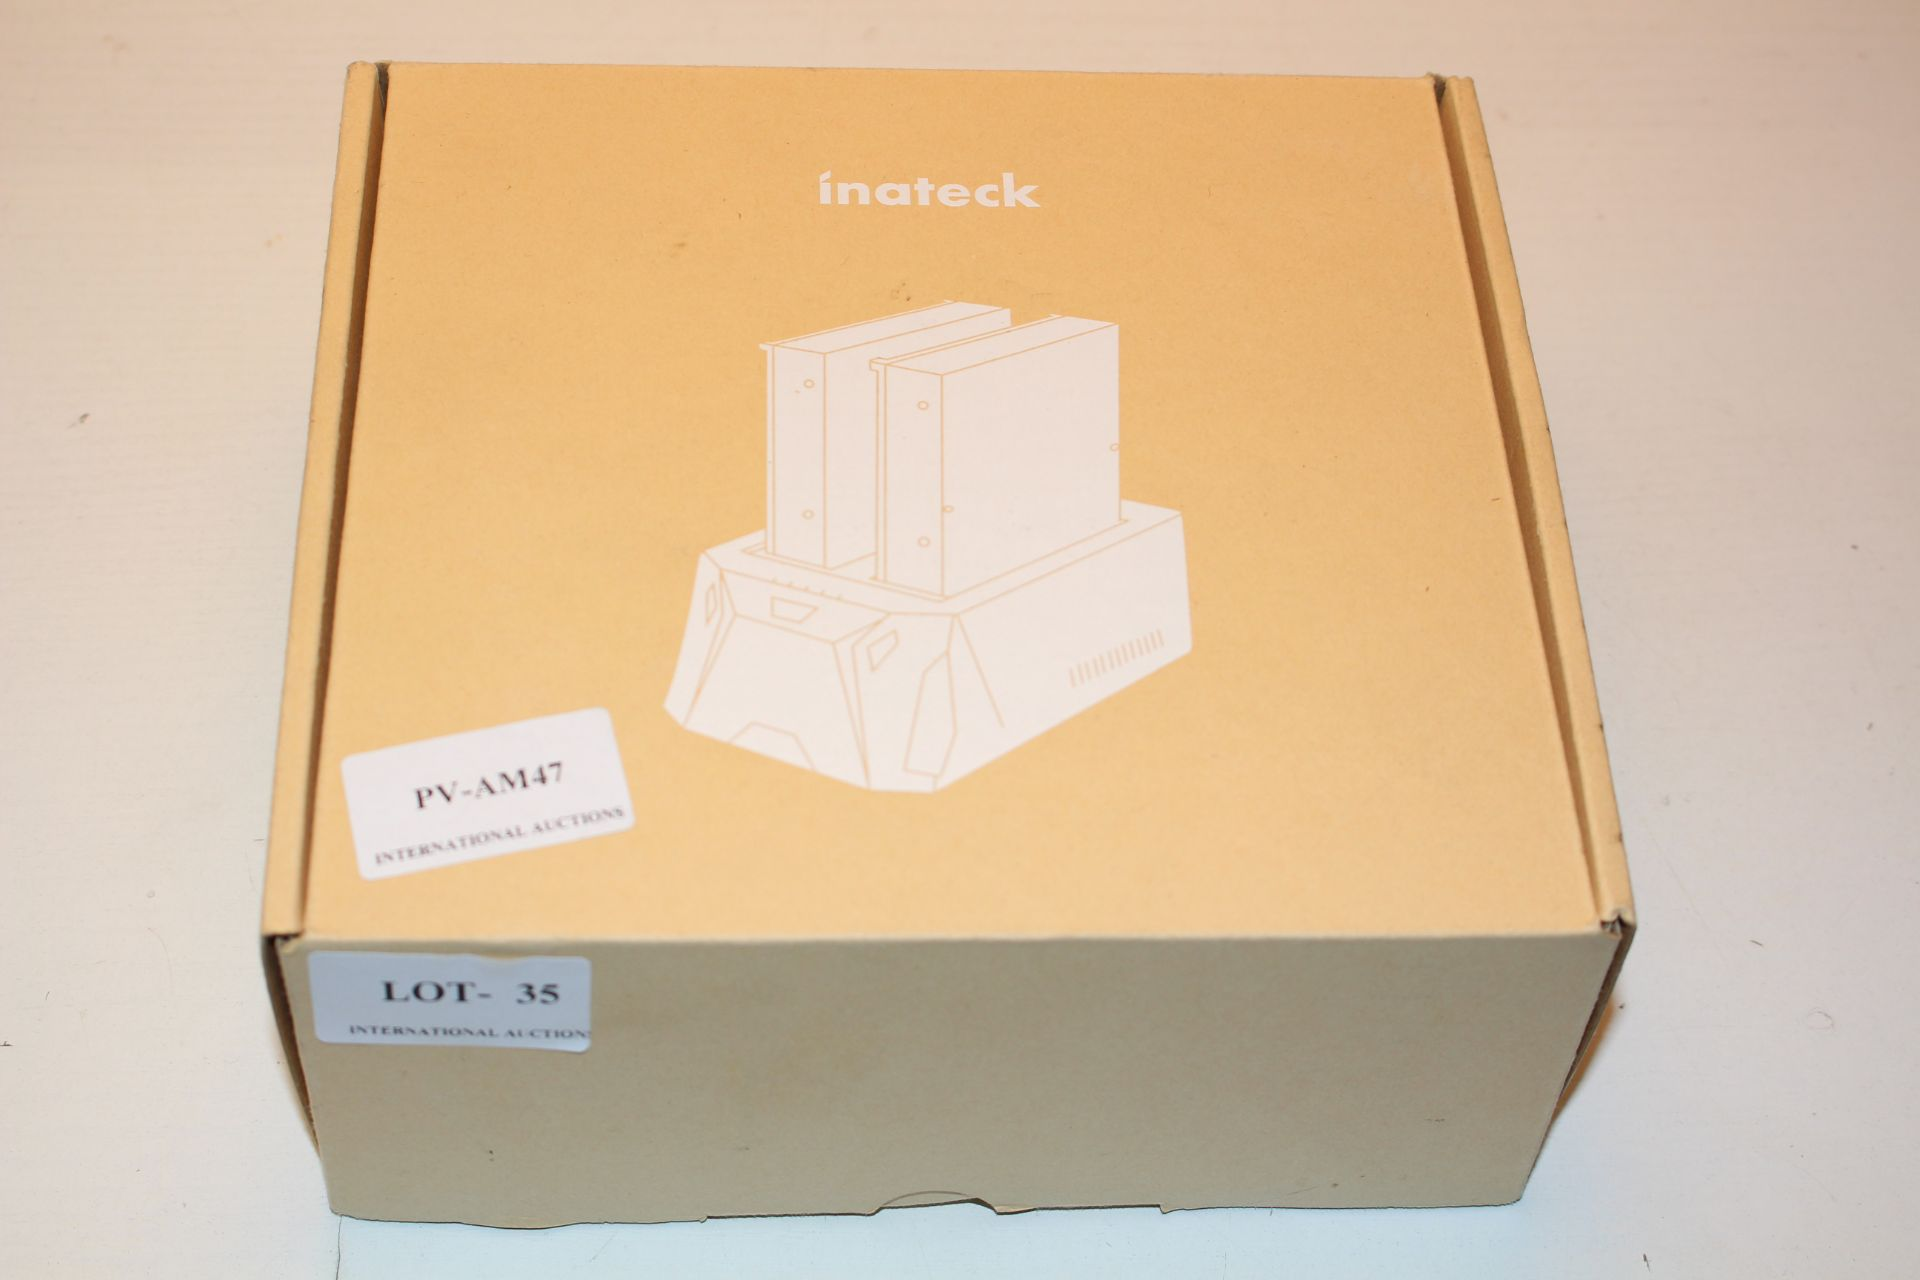 BOXED INNATEK FD2005 HARD DRIVE DOCKING STATION RRP £29.99Condition ReportAppraisal Available on